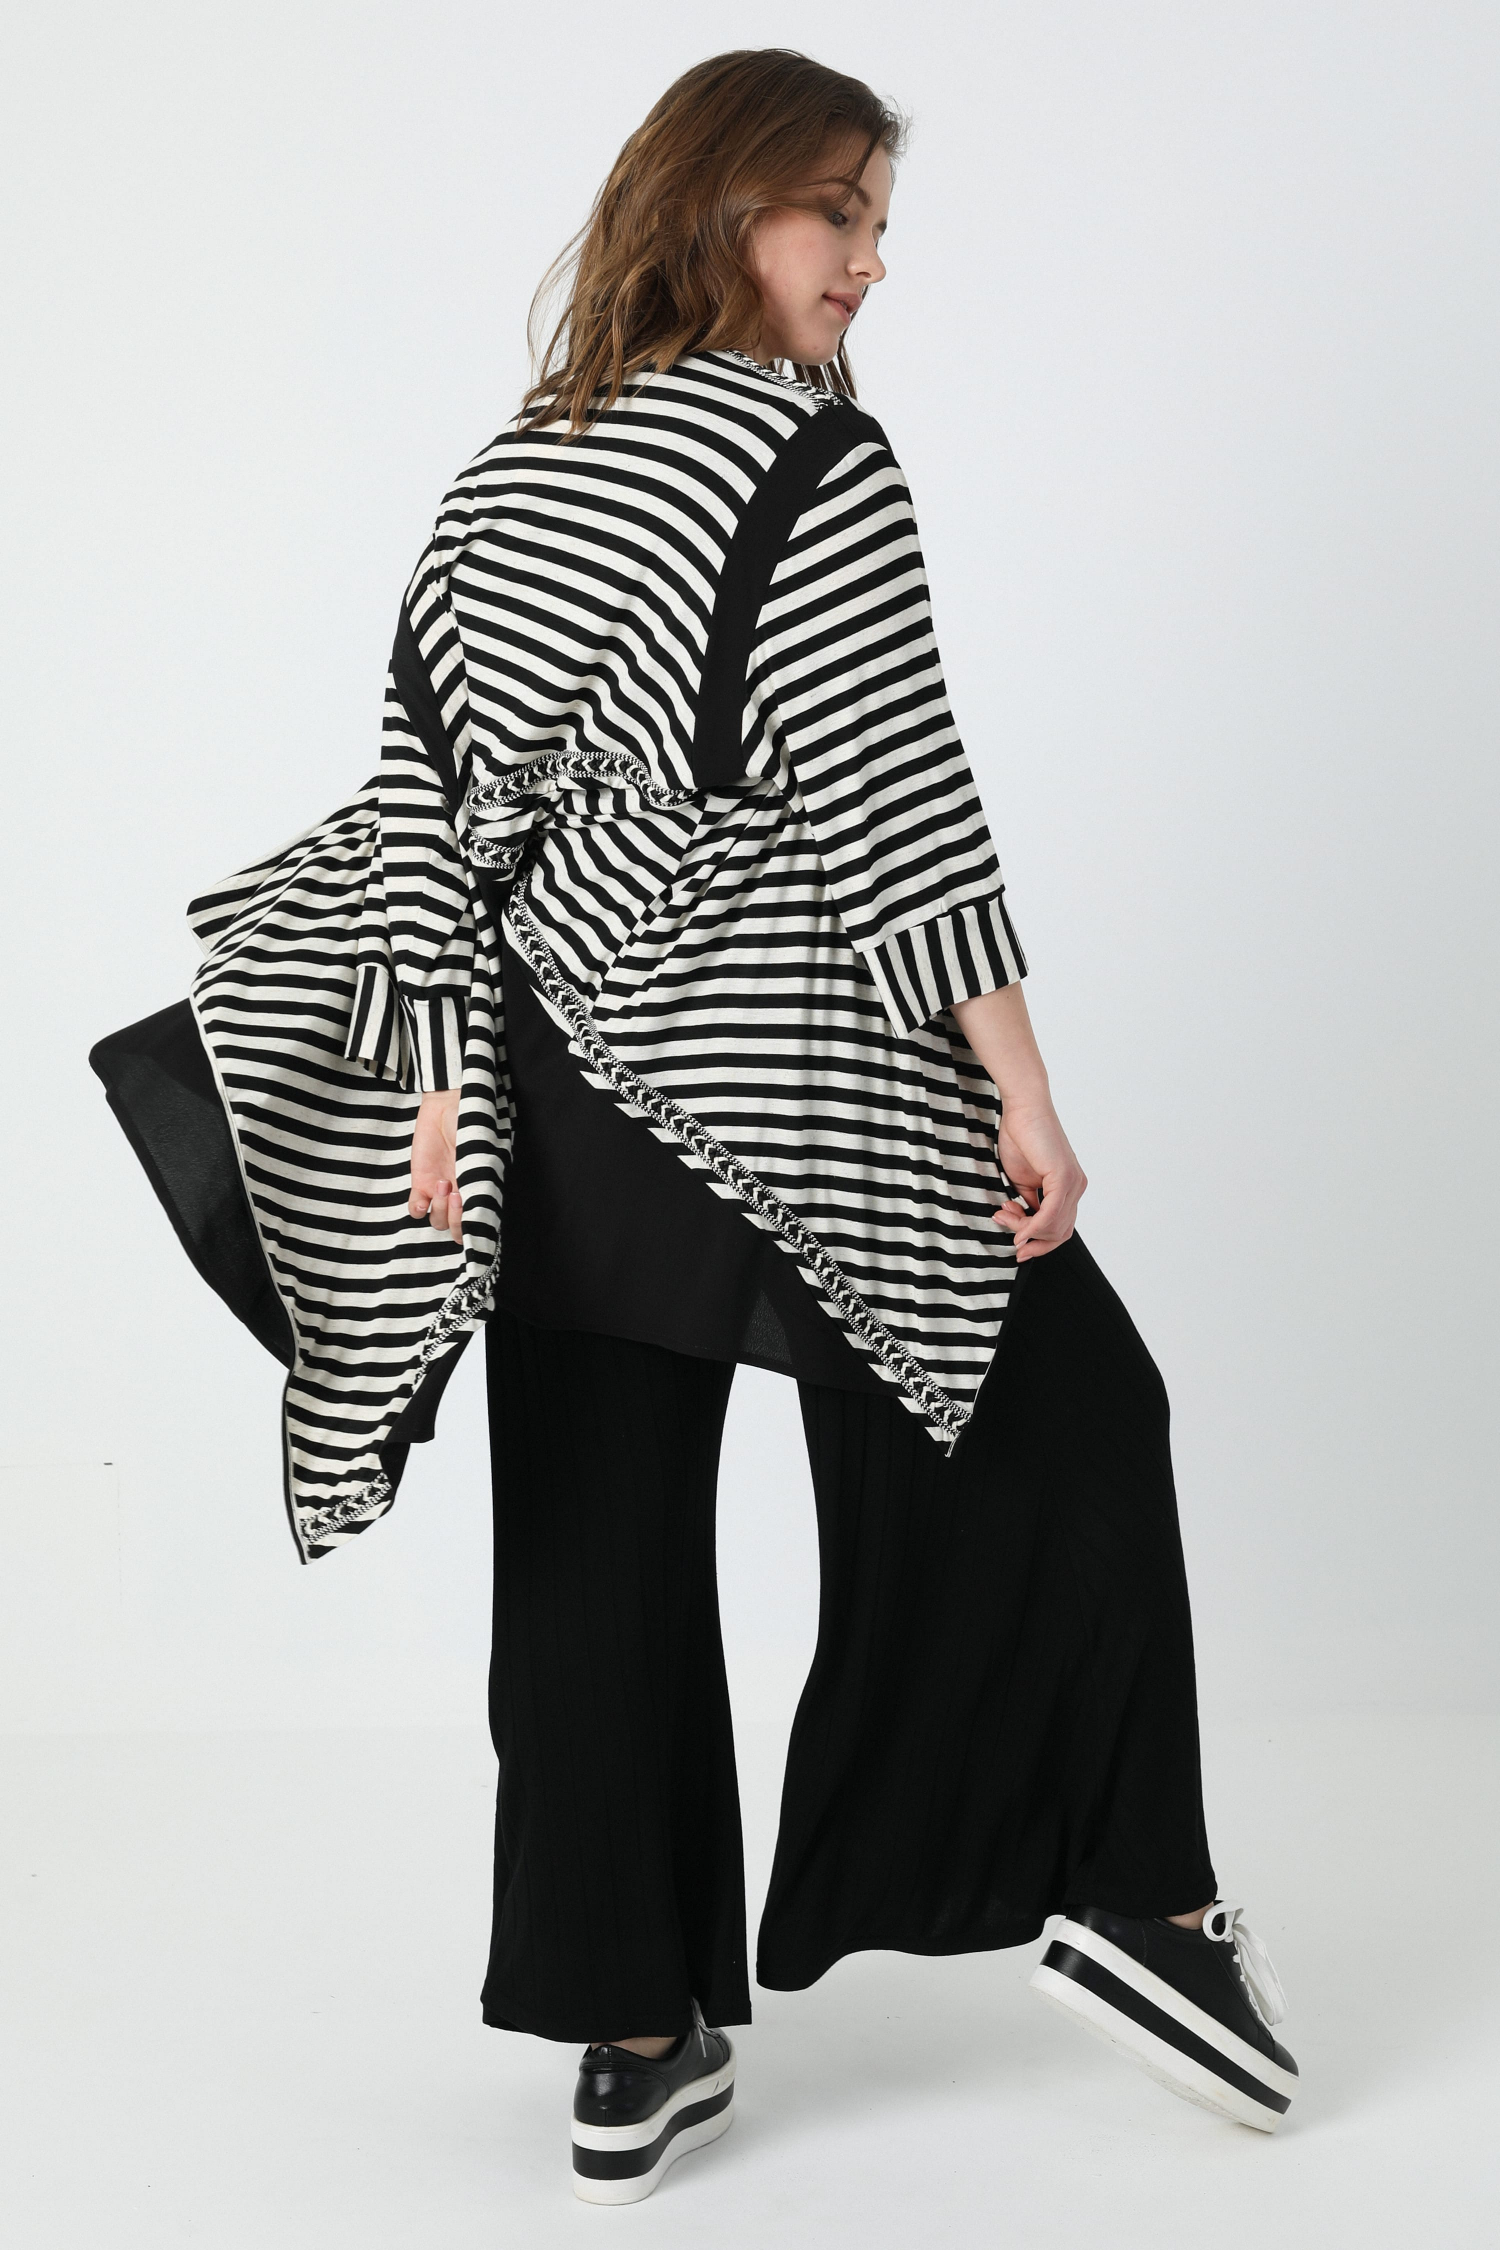 Striped and plain knit cardigan